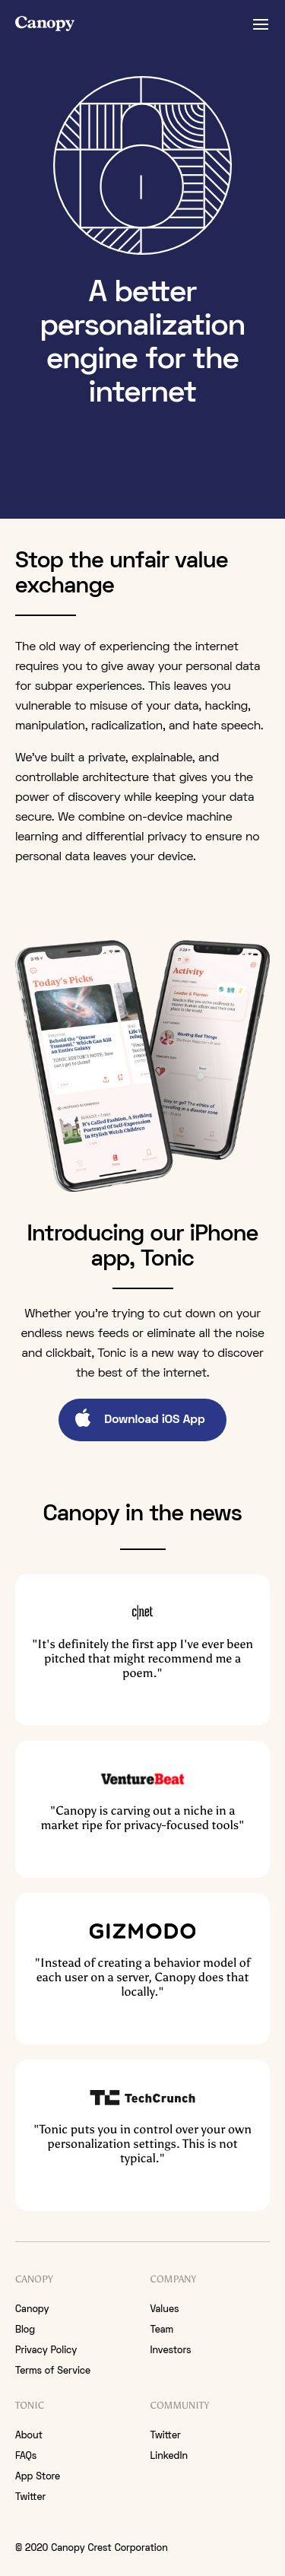 Example of Design for Uncategorized, Mobile Landing Page by canopy.cr | Mobile Landing Page Design